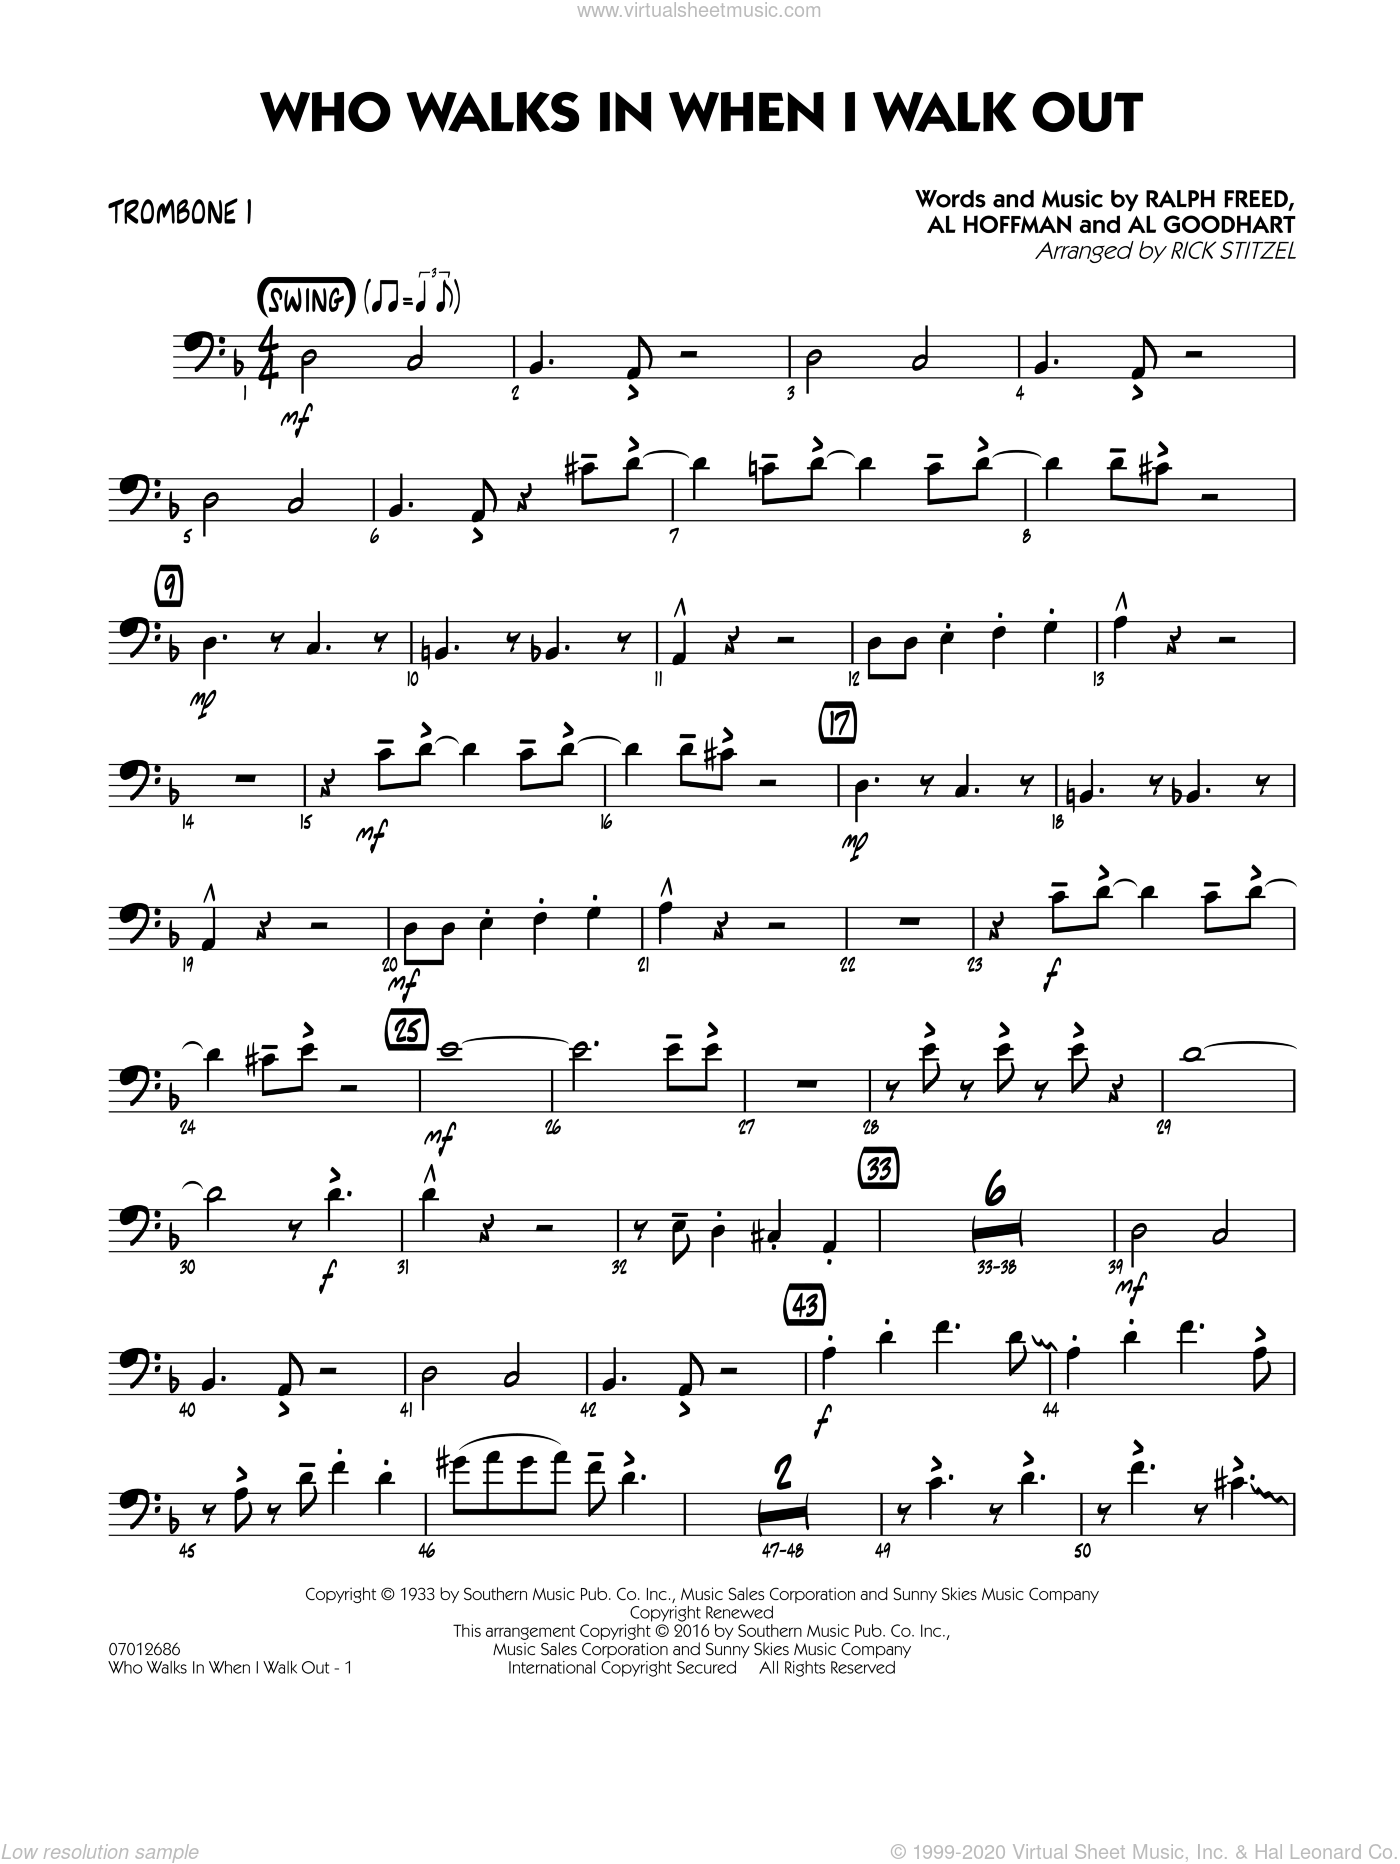 Who Walks In When I Walk Out? (Key: D minor) sheet music for jazz band (trombone 1) by Rick Stitzel, Ella Fitzgerald, Louis Armstrong, Al Goodhart, Al Hoffman and Ralph Freed. Score Image Preview.